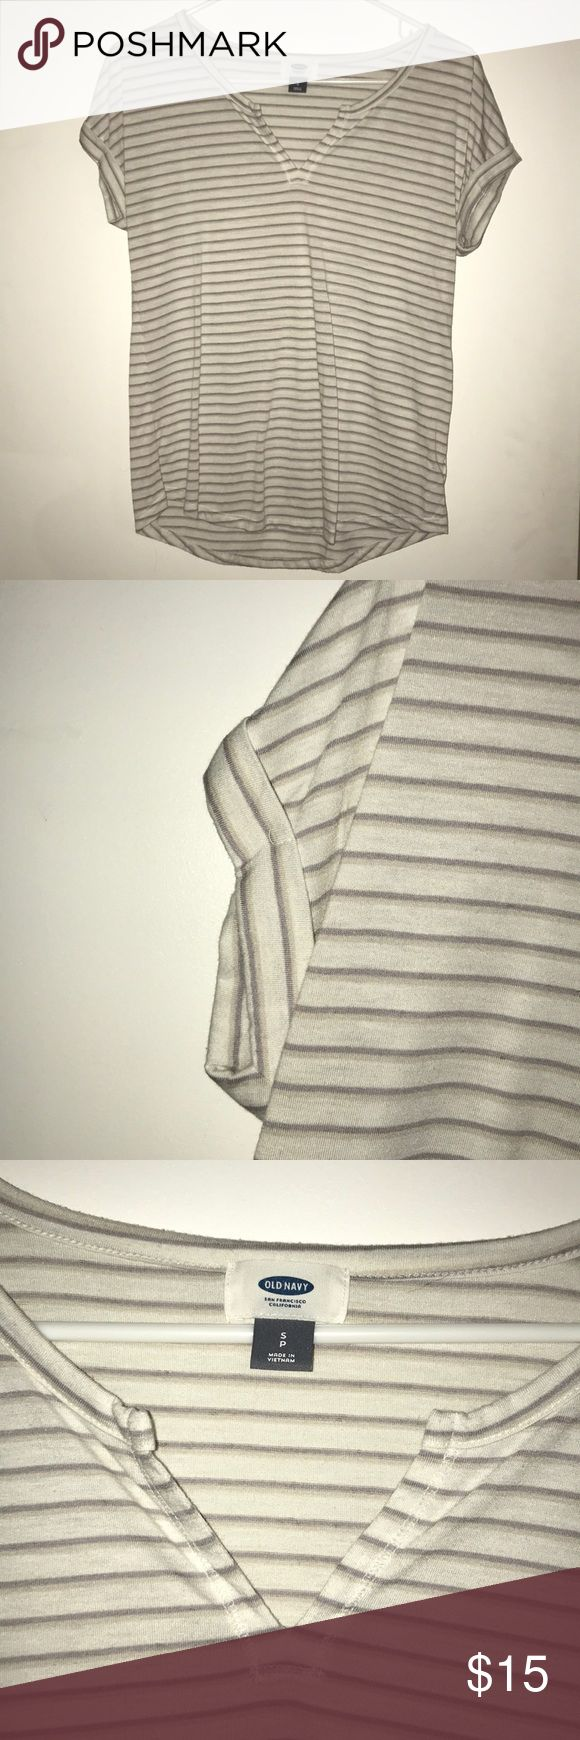 Striped t-shirt Gray and white Striped t-shirt. Folded sleeves and v-neck. Worn twice and in perfect condition. Old Navy Tops Tees - Short Sleeve